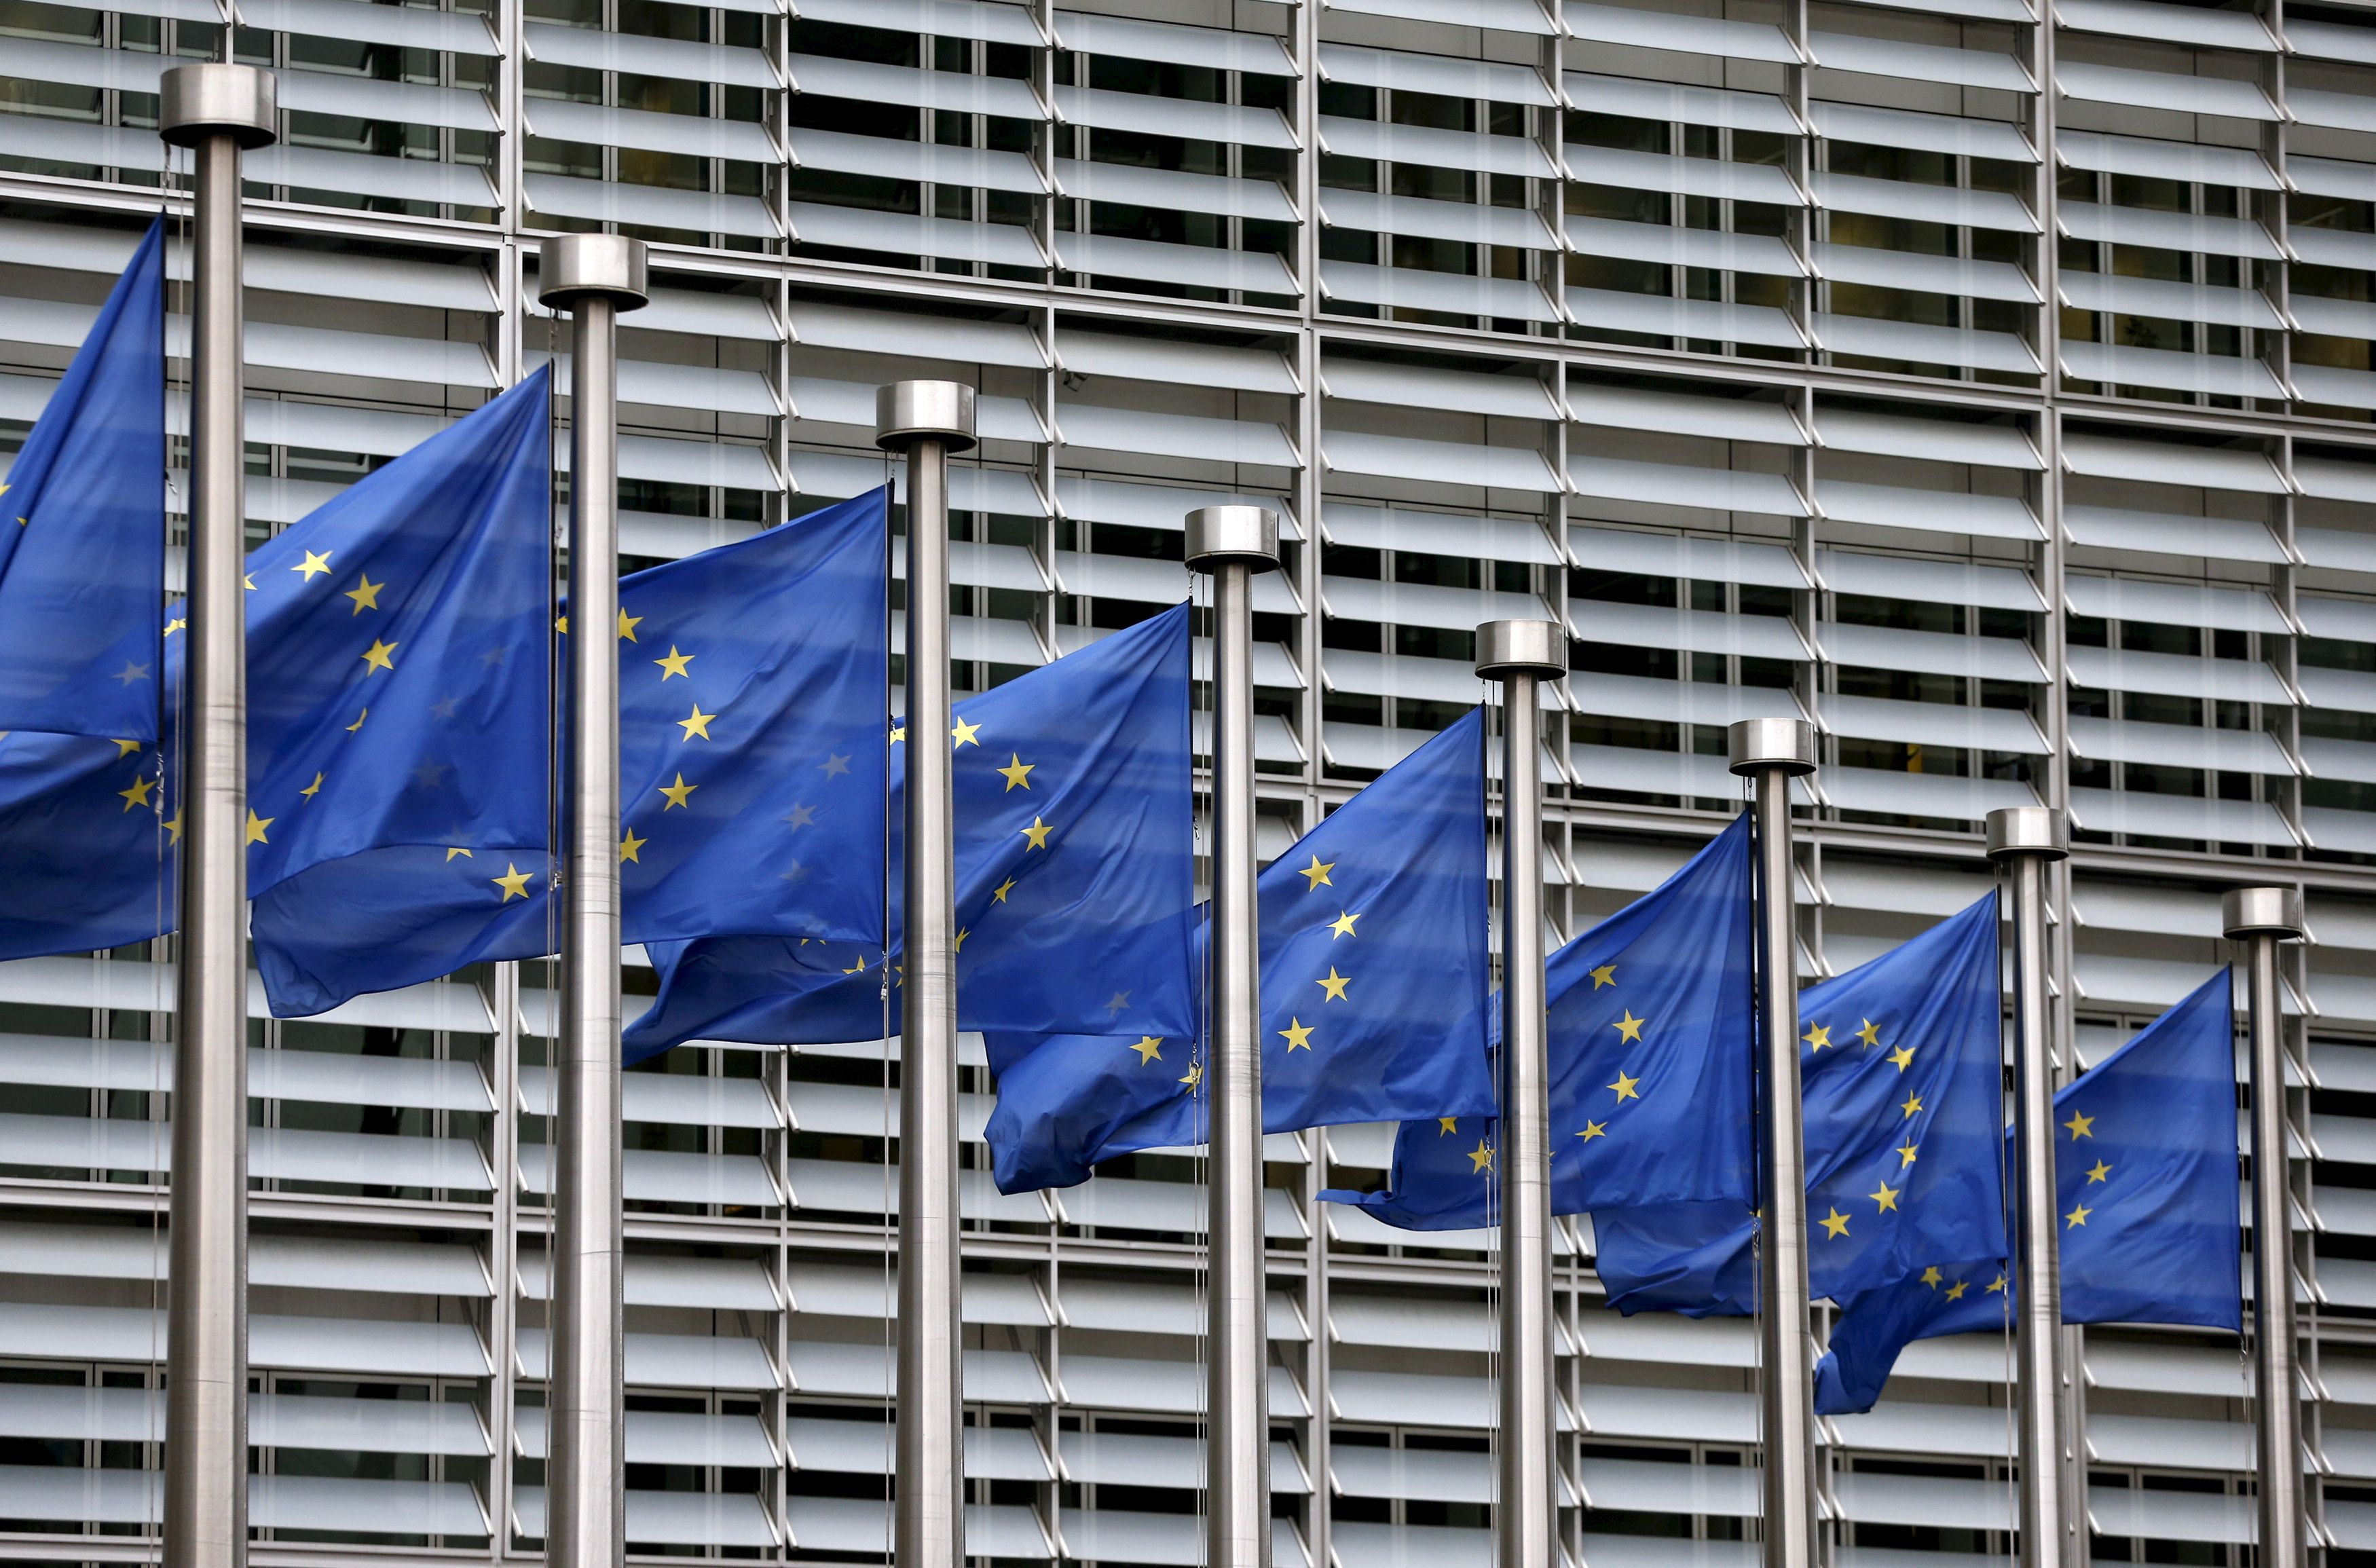 European Union flags flutter outside the EU Commission headquarters in Brussels, Belgium, in this file picture taken October 28, 2015. REUTERS/Francois Lenoir